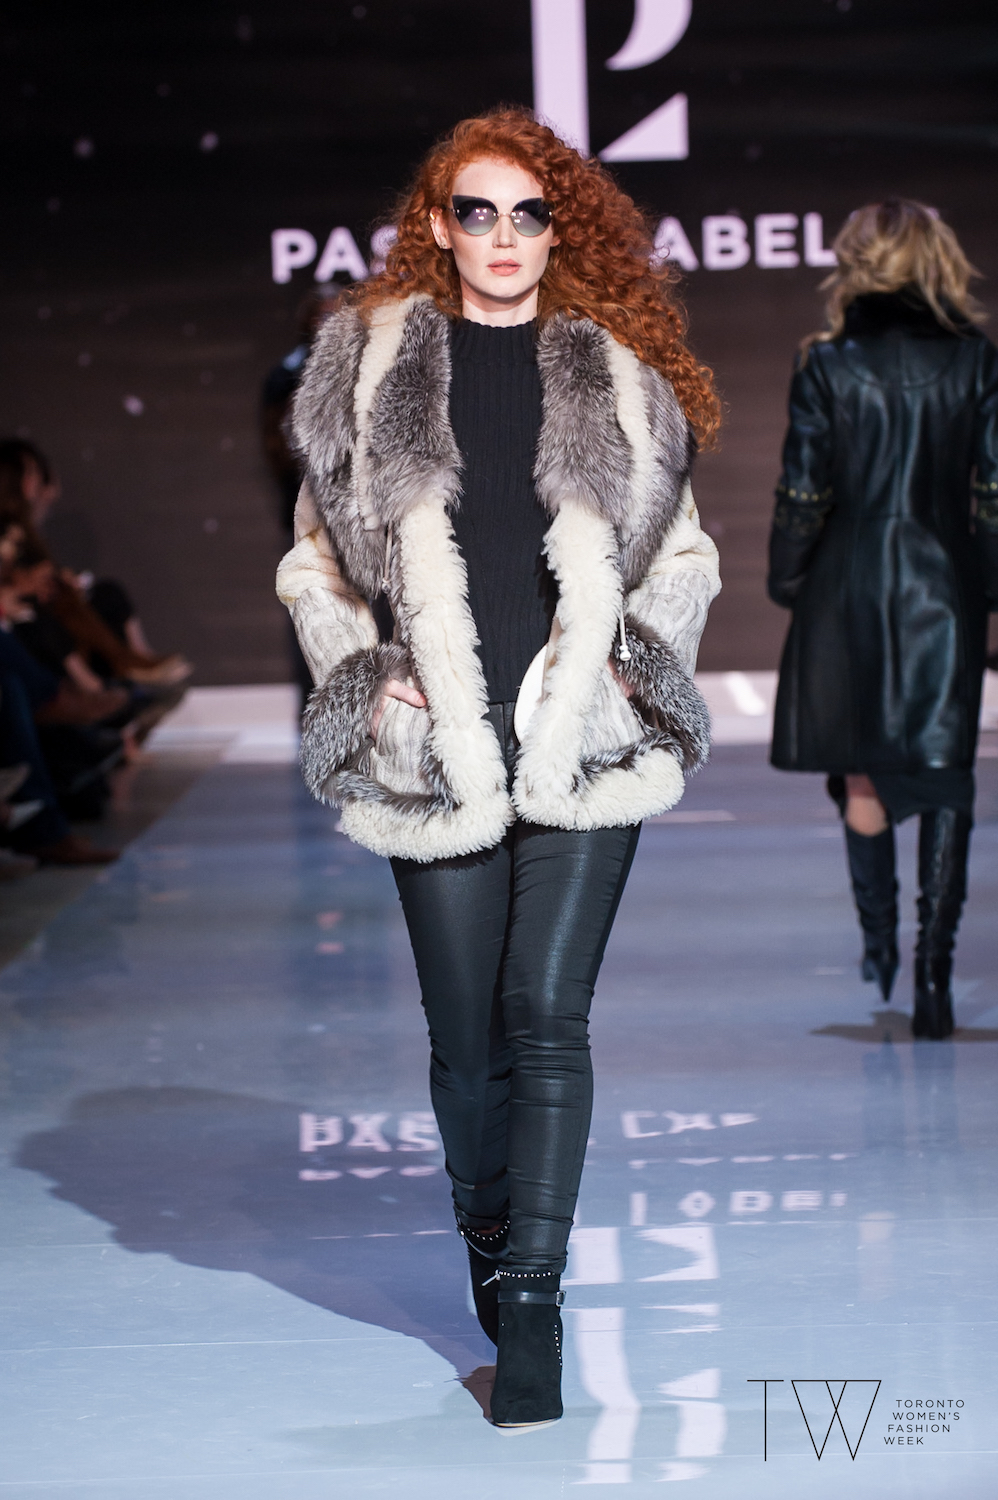 pascal_labelle-twfw-toronto-womens-fashion-week-photo-credit-che-rosales-womens-look-2.jpg